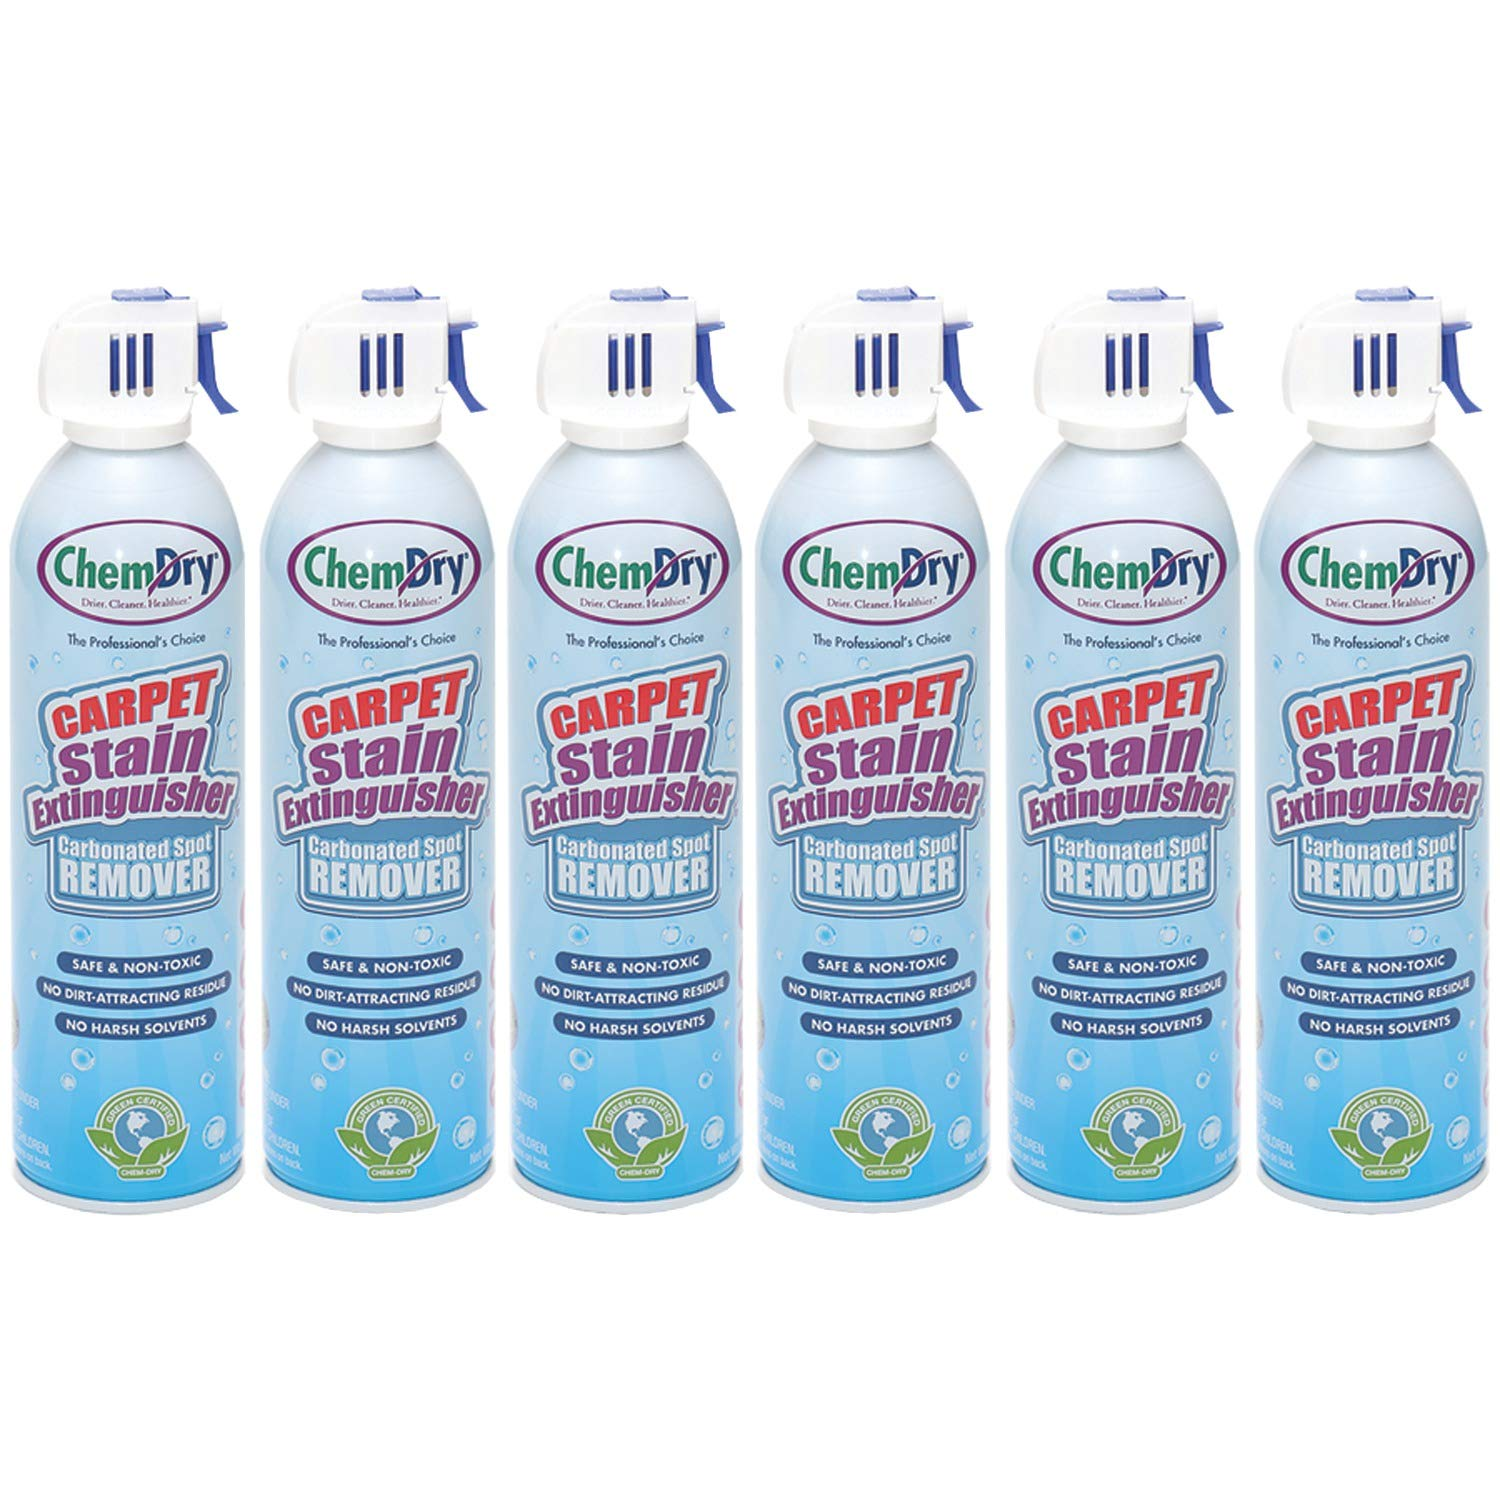 Chem-Dry Carpet Stain Extinguisher - 18 oz.  - 6 pack by CHEM-DRY(R) (Image #1)